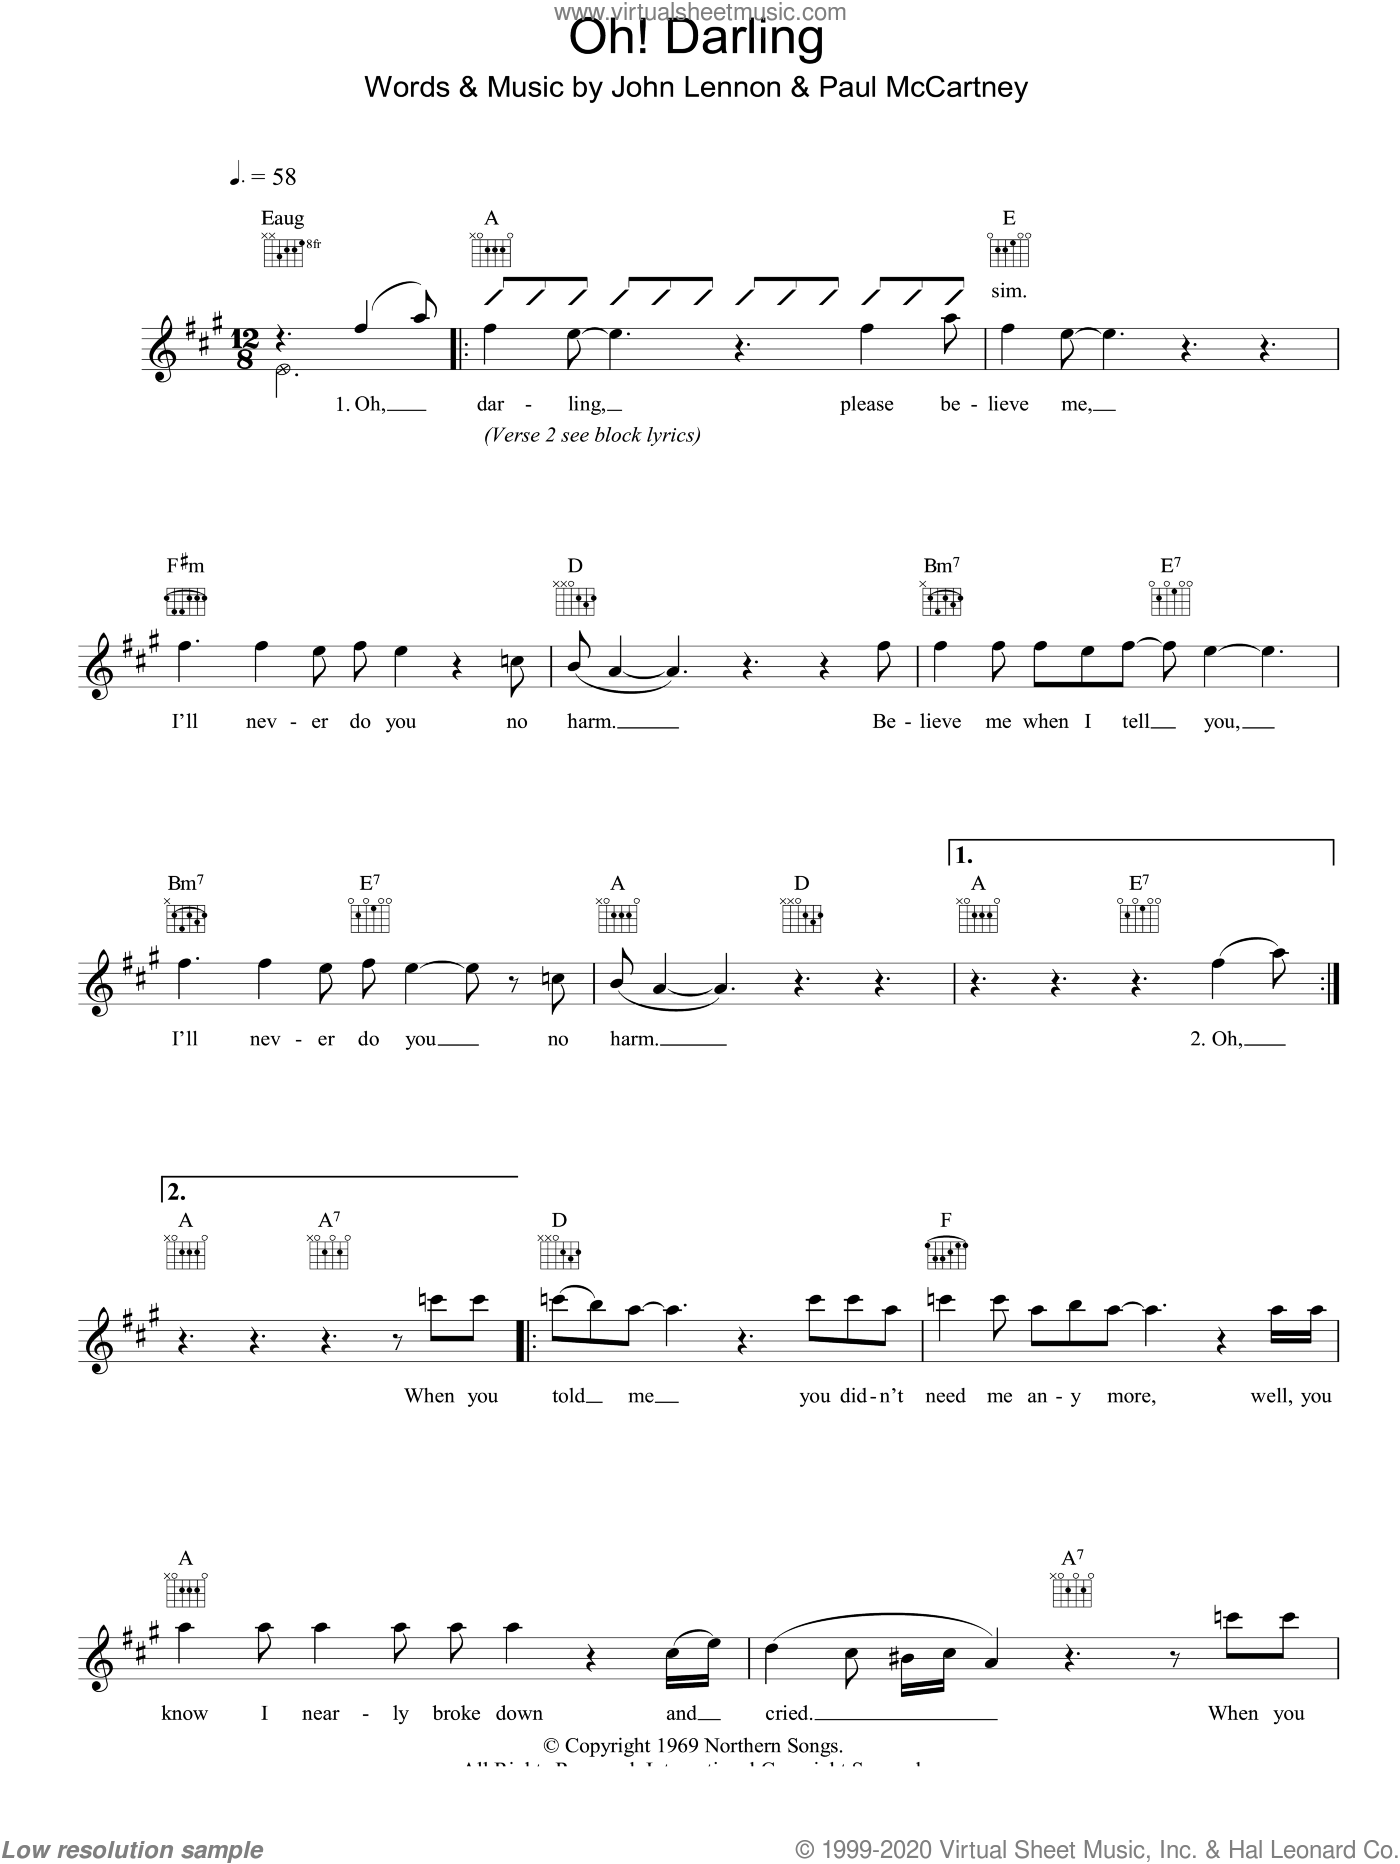 Oh! Darling sheet music for voice and other instruments (fake book) by The Beatles, John Lennon and Paul McCartney, intermediate skill level